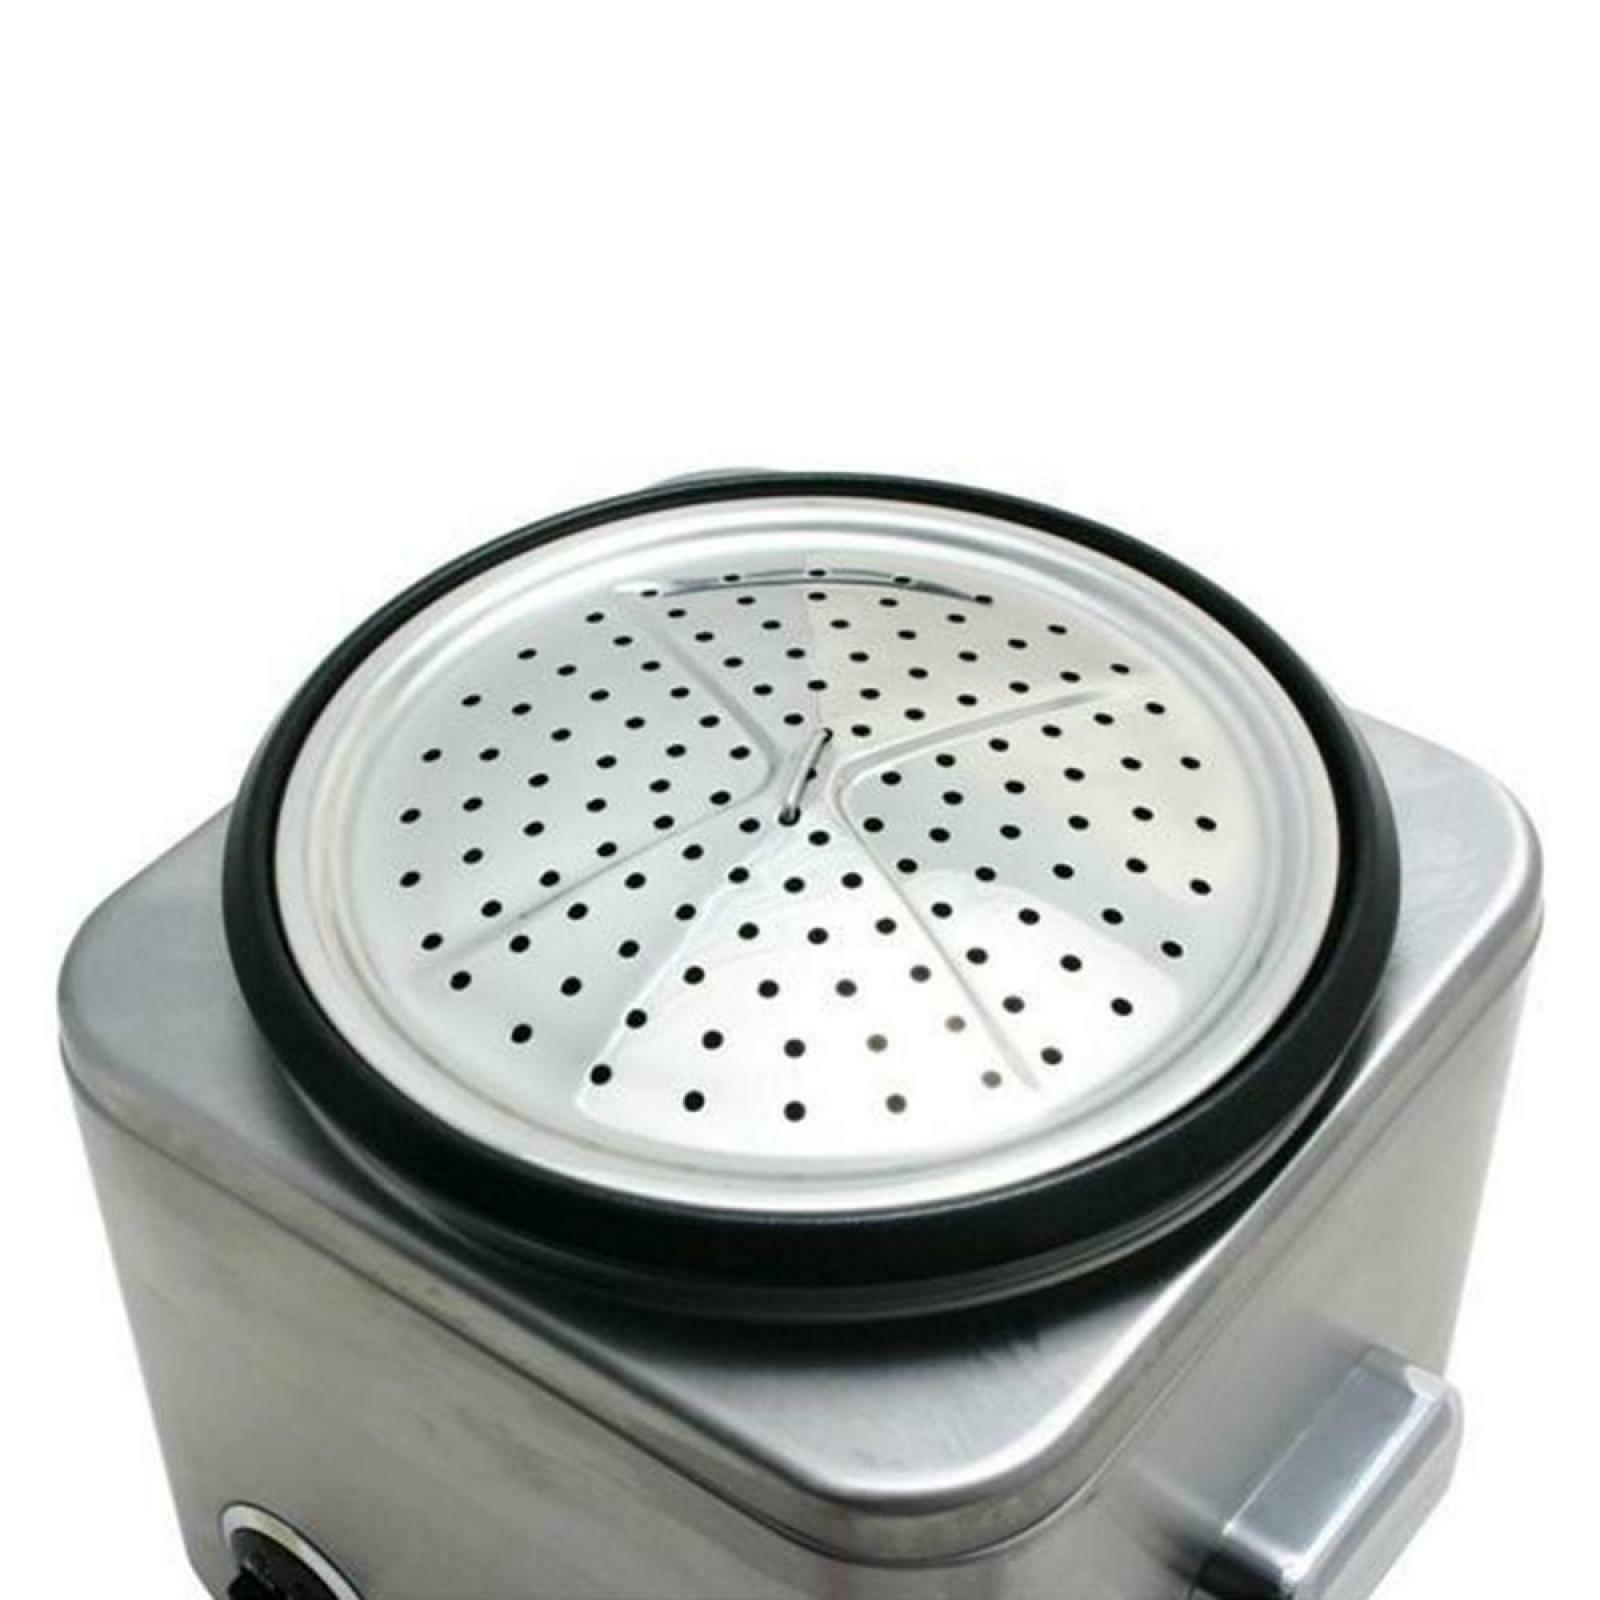 8-Cup Stainless Steel Rice Cooker And Automatic Keep-Warm